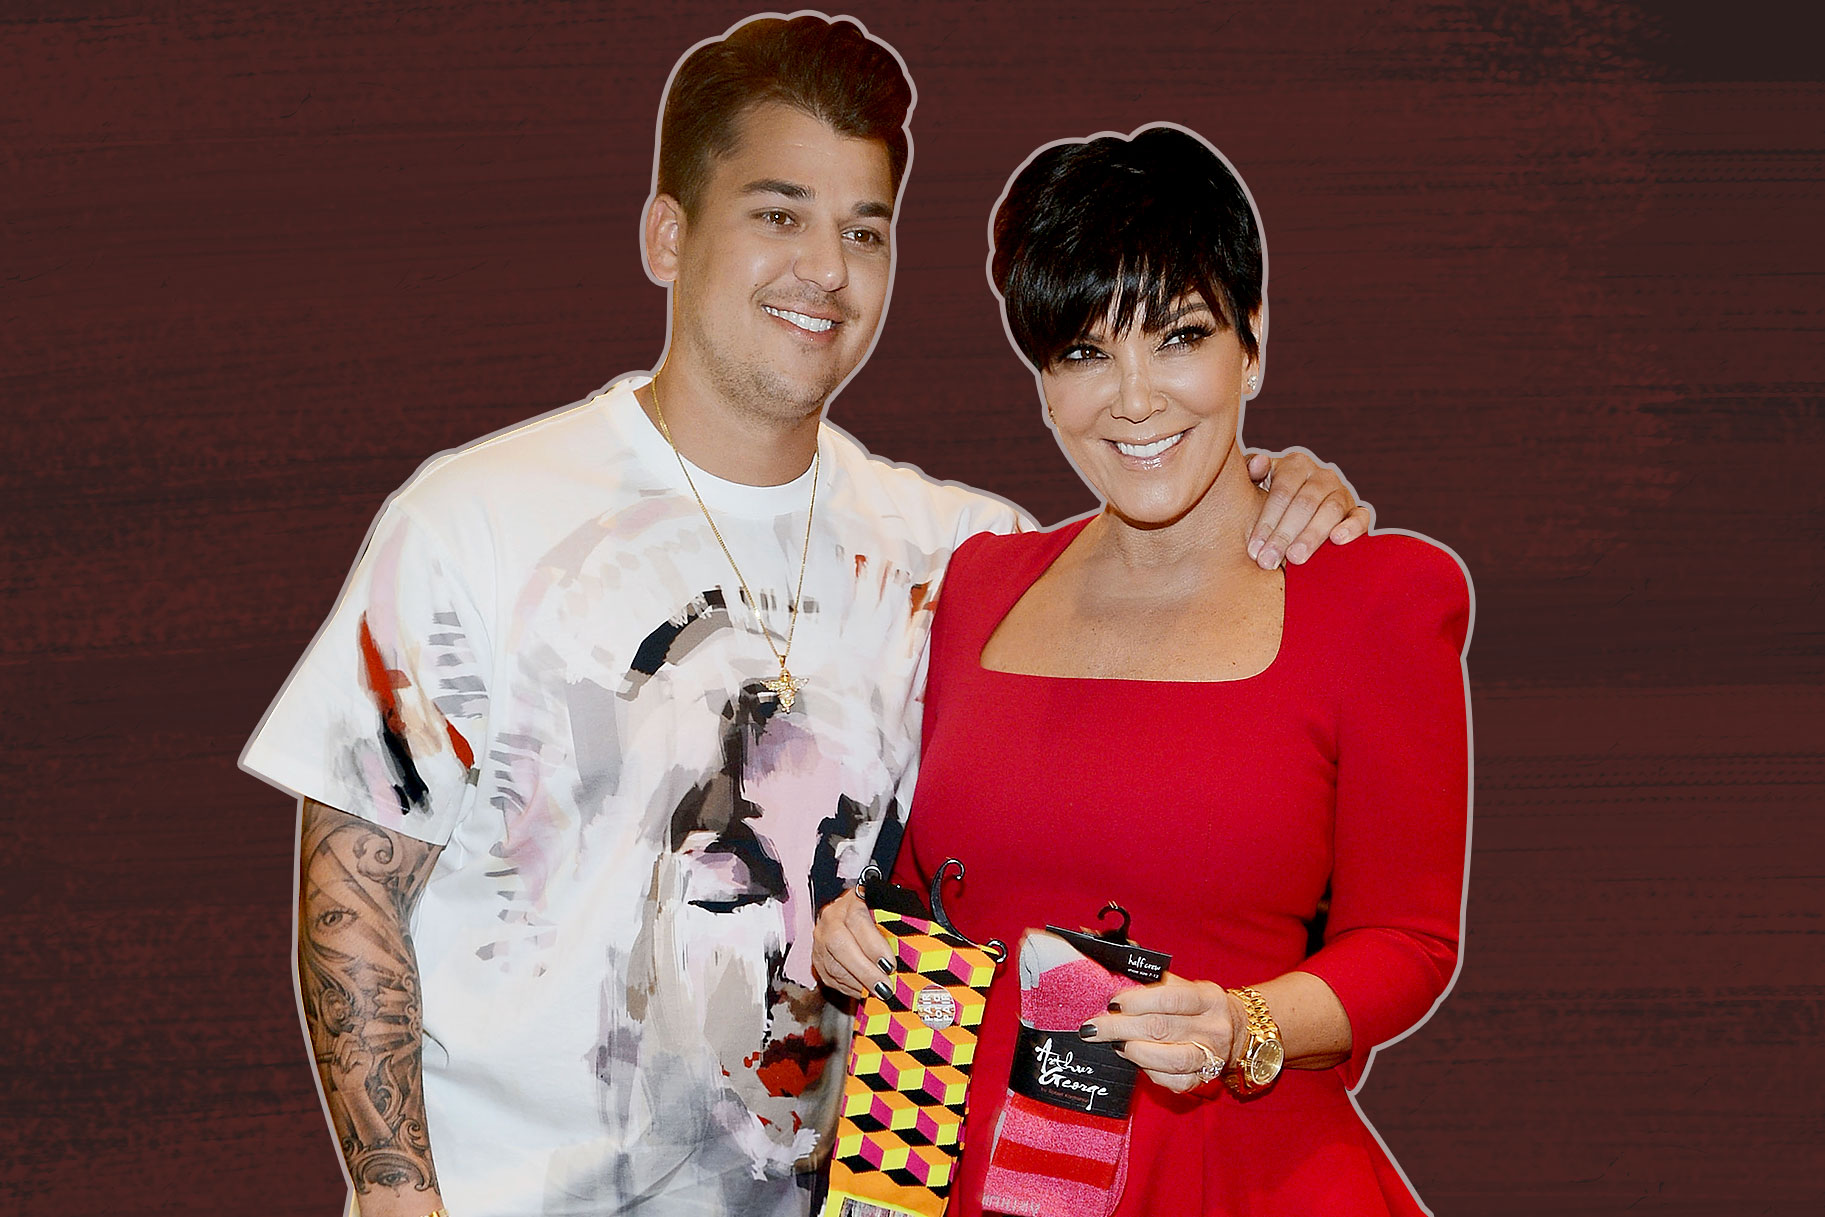 rob kardashian dating 2018